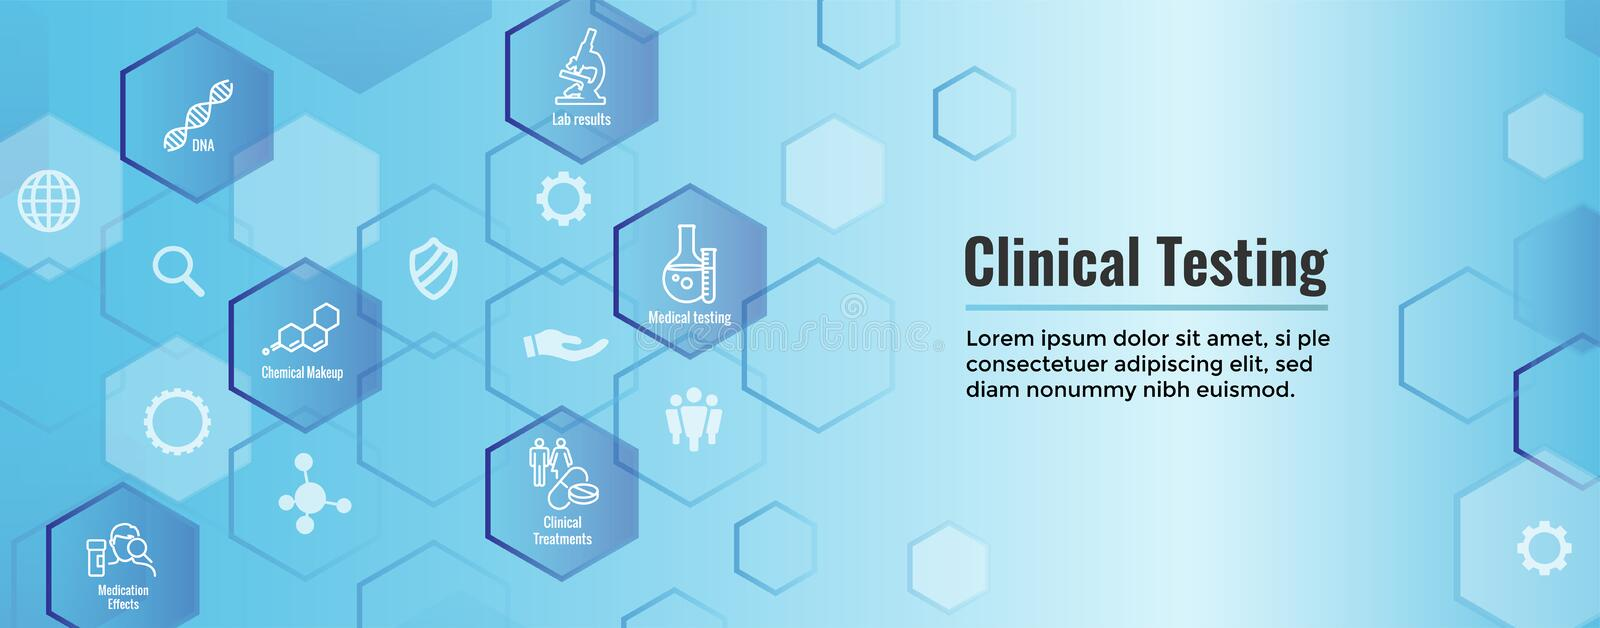 Medical Healthcare Icons with People Charting Disease or Scientific Discovery Web Header Banner vector illustration